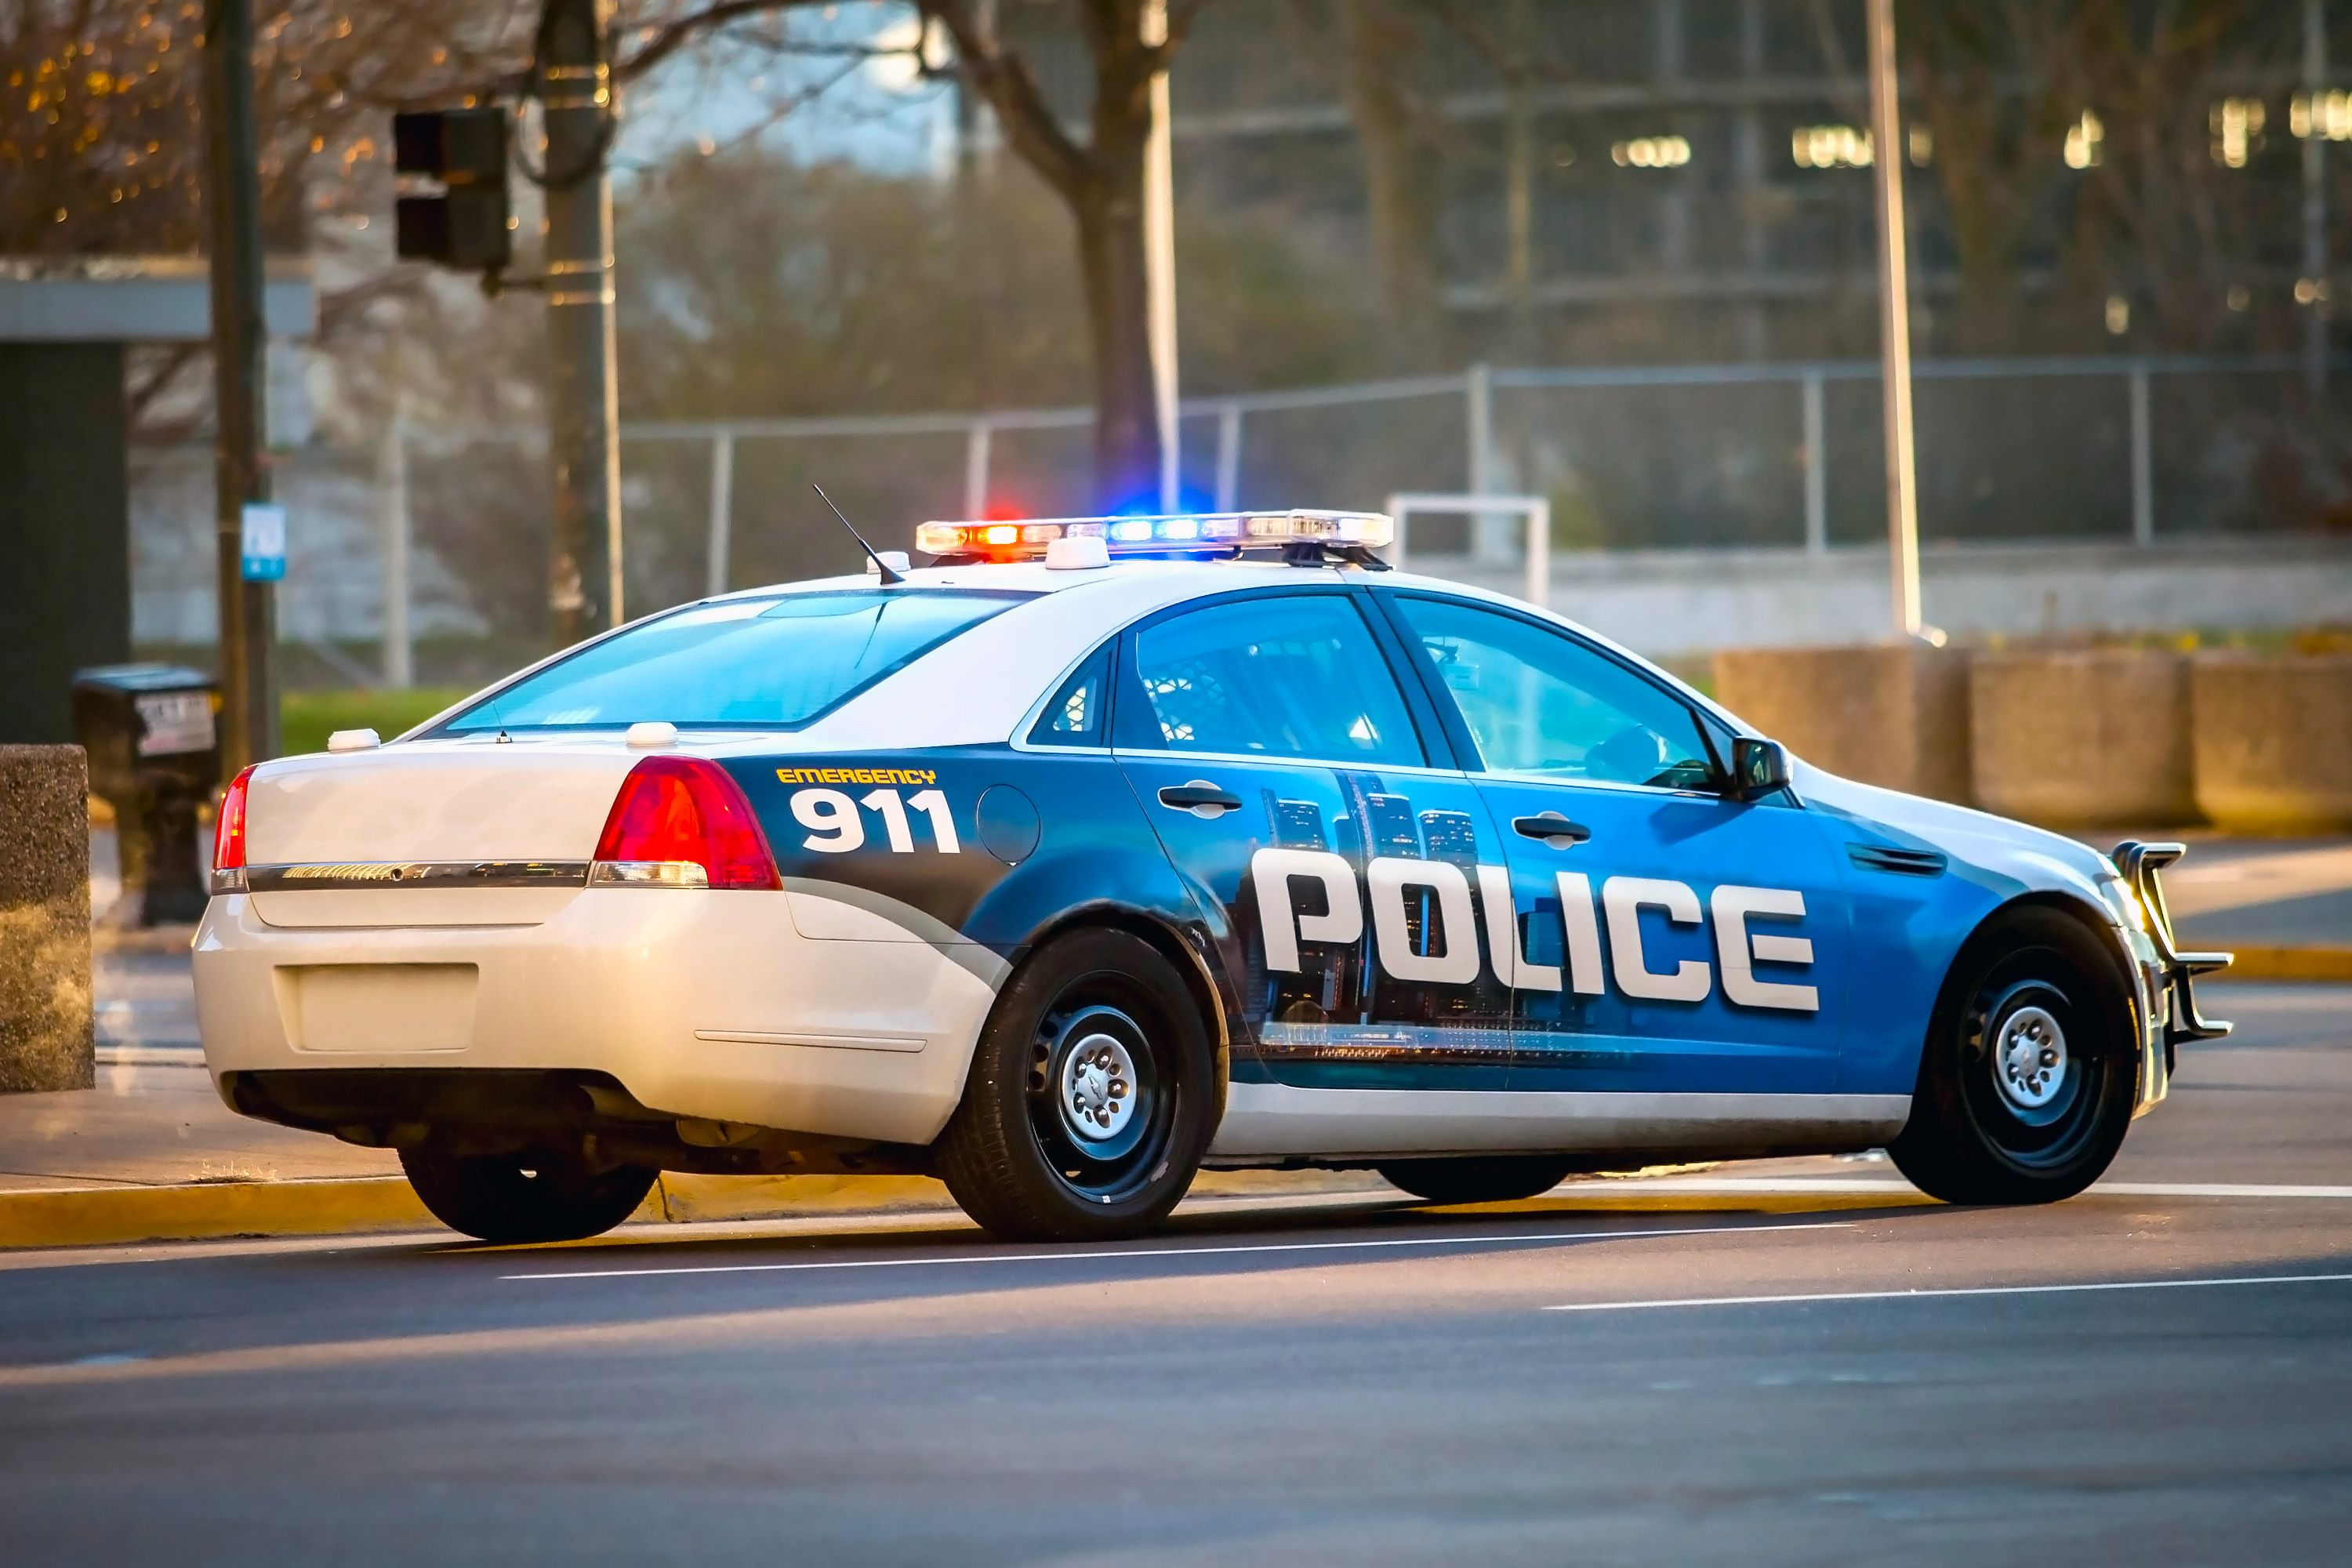 A police patrol driving down the street. | Source: Shutterstock